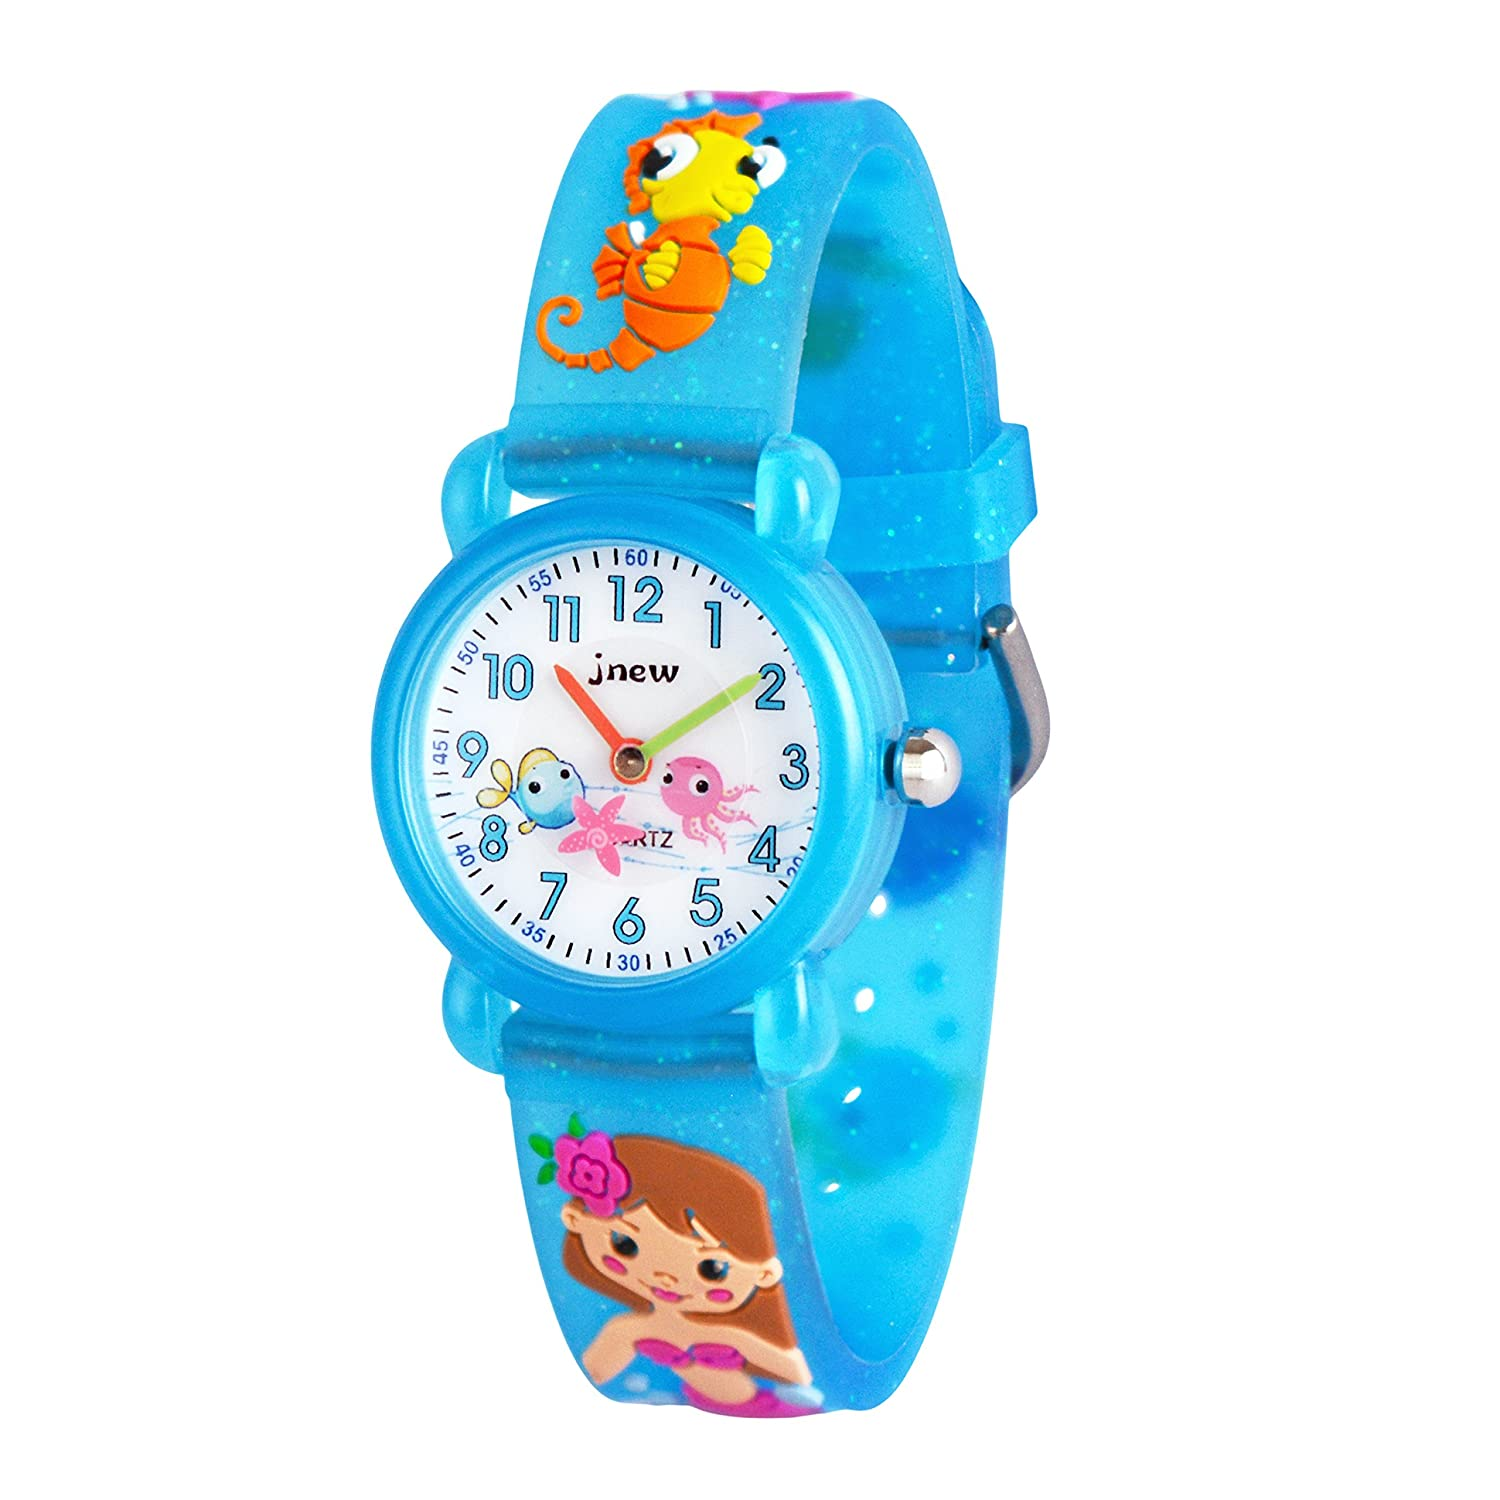 WOLFTEETHアナログ幼児Girls School Day Wrist Watch with Second Hand Cute Small面ラウンドダイヤル防水Little Girls Watch 3066 Sea Horse Band Blue B077MXF54K Sea Horse Band Blue Sea Horse Band Blue